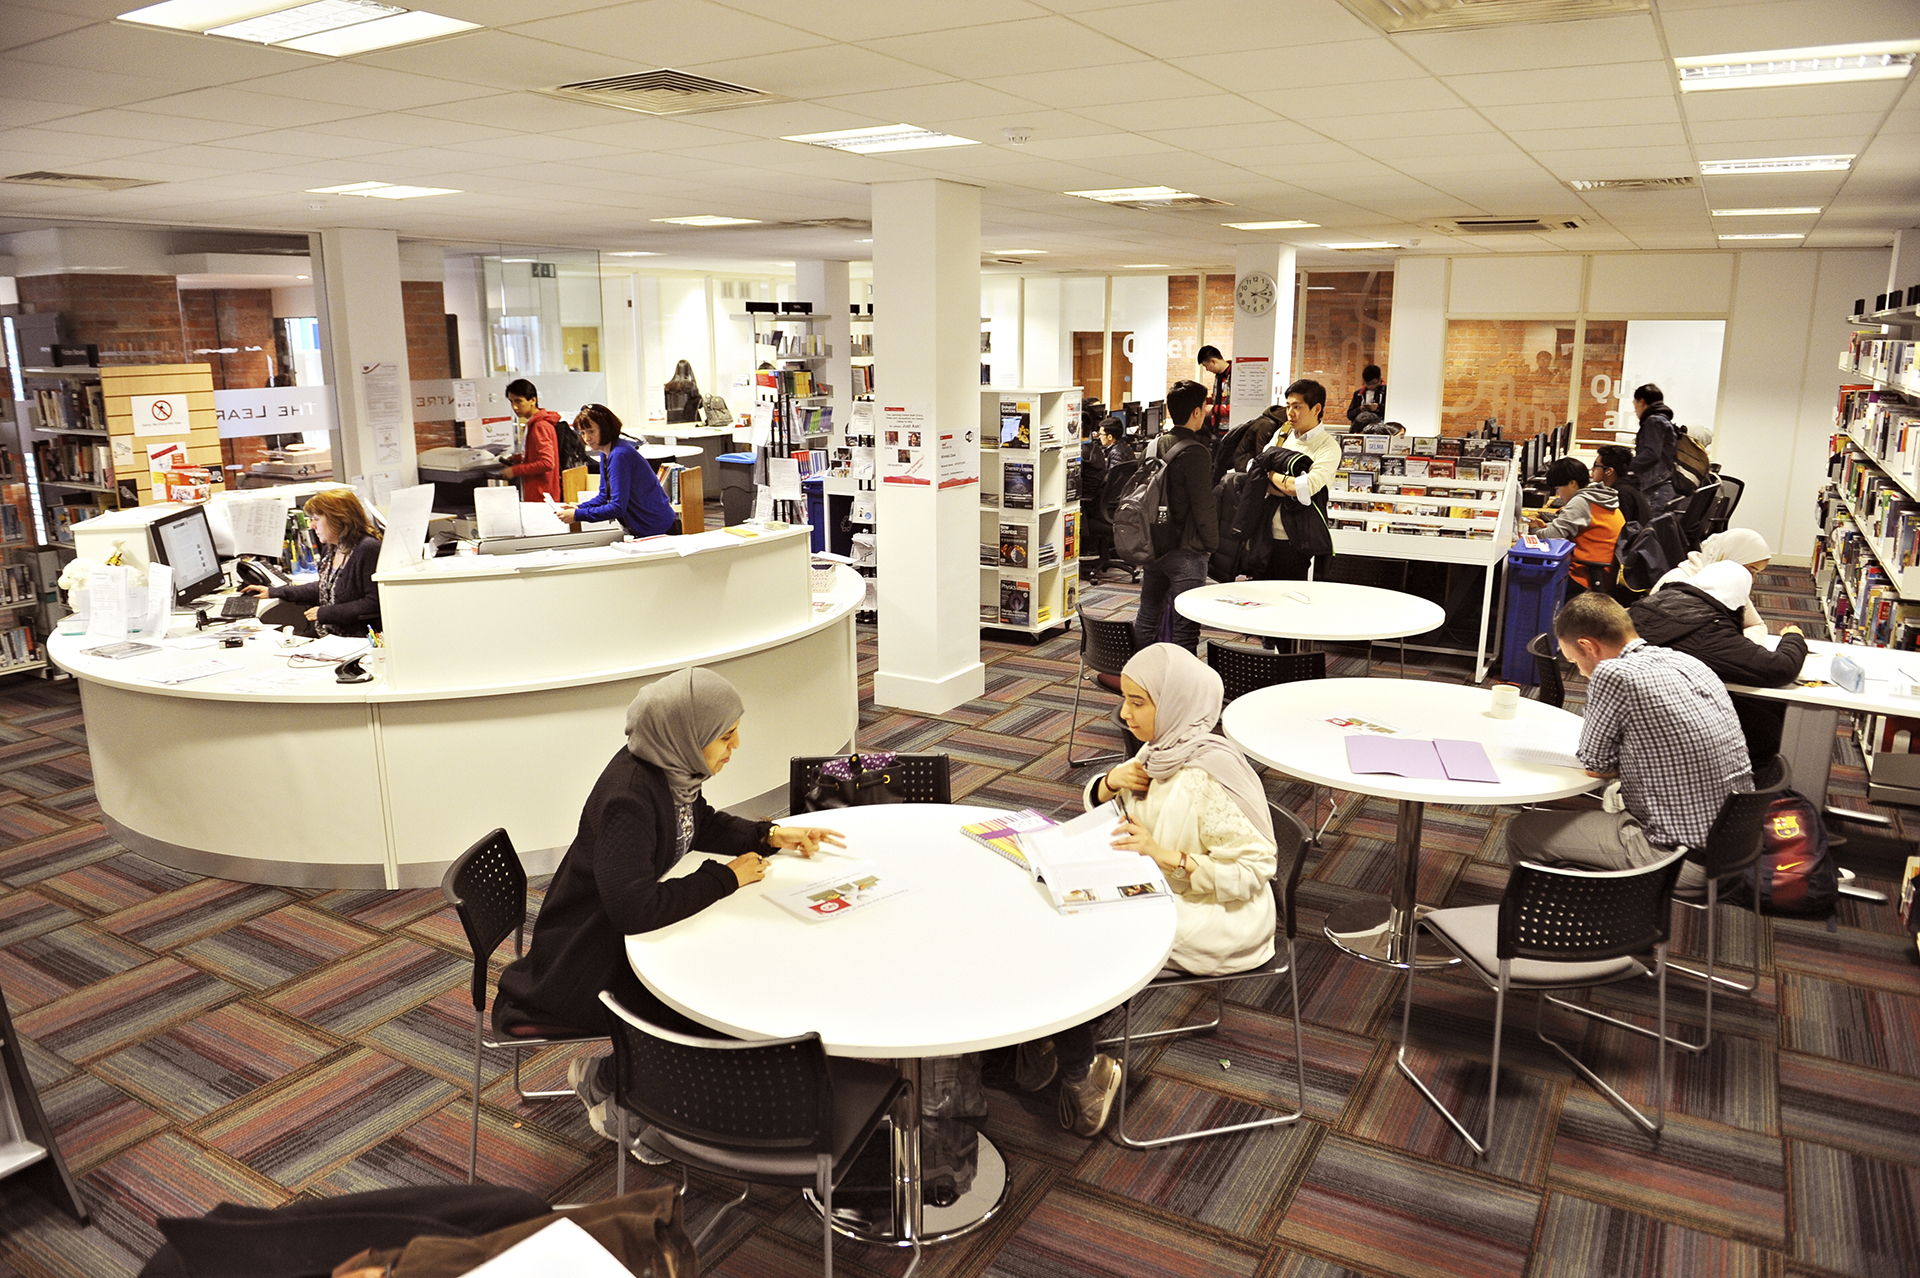 International students working in Learning Resource Centre with help desk